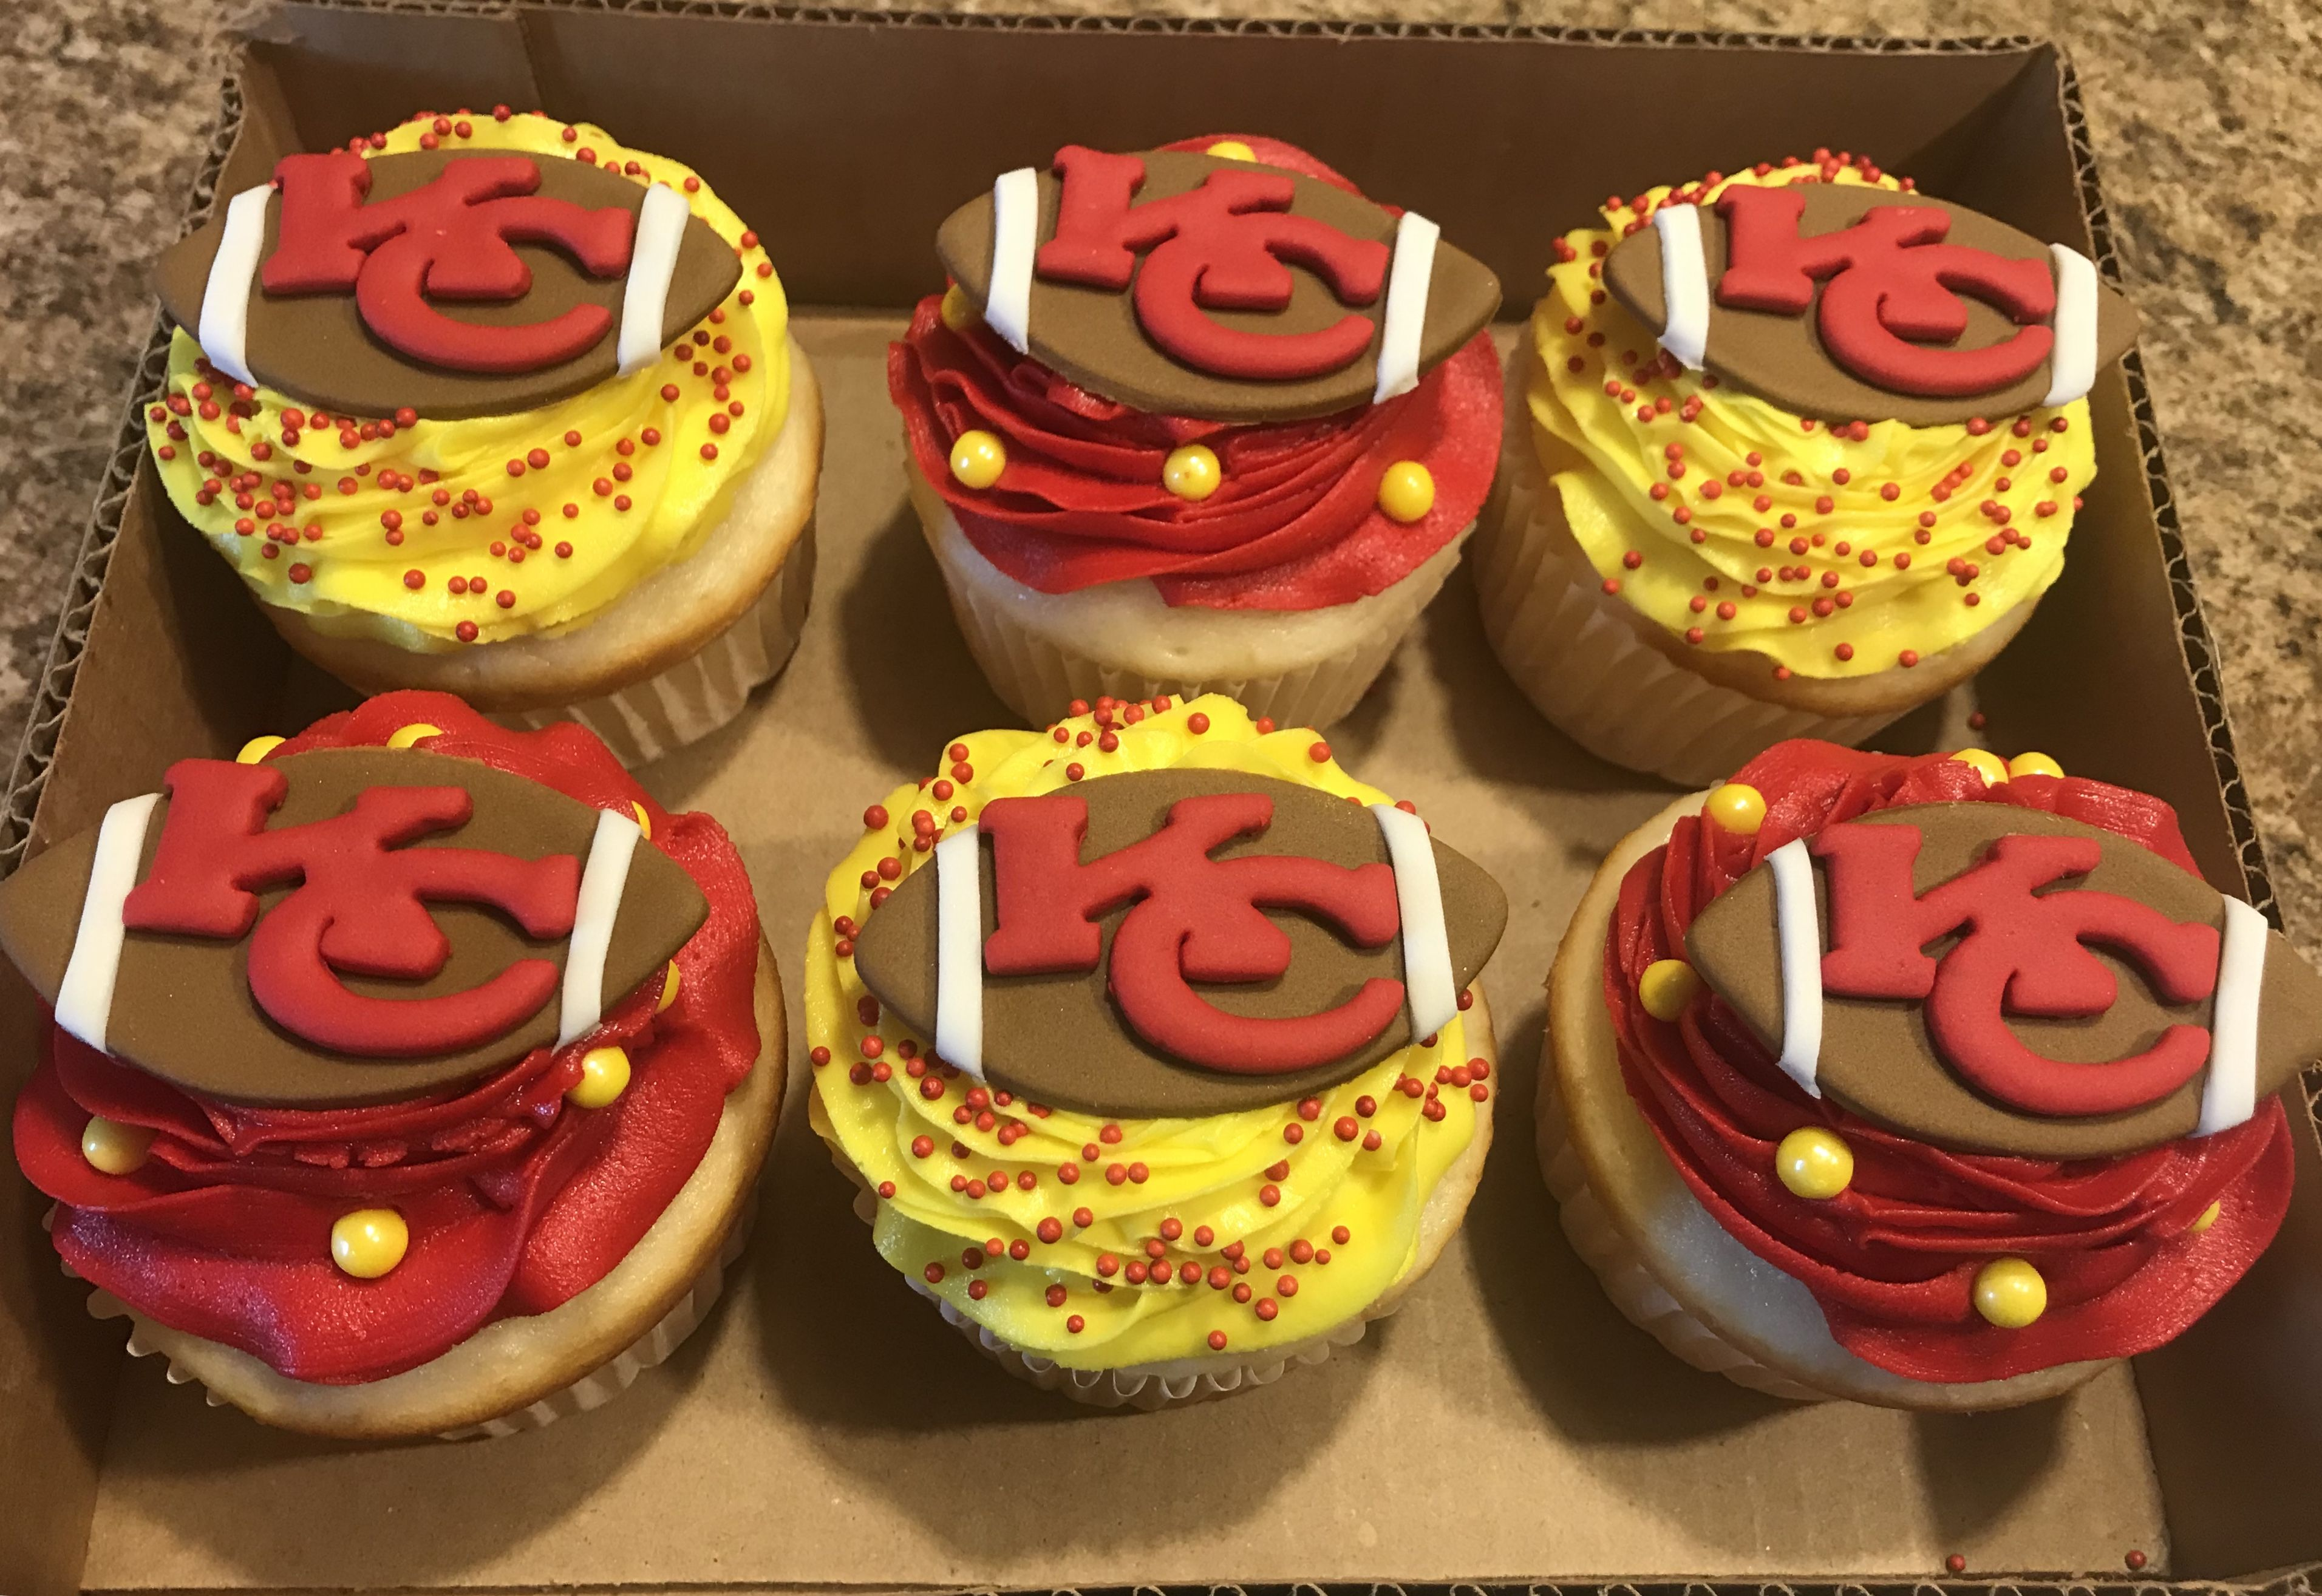 Kc Chiefs Cupcakes With Images Snack Cake Super Bowl Food